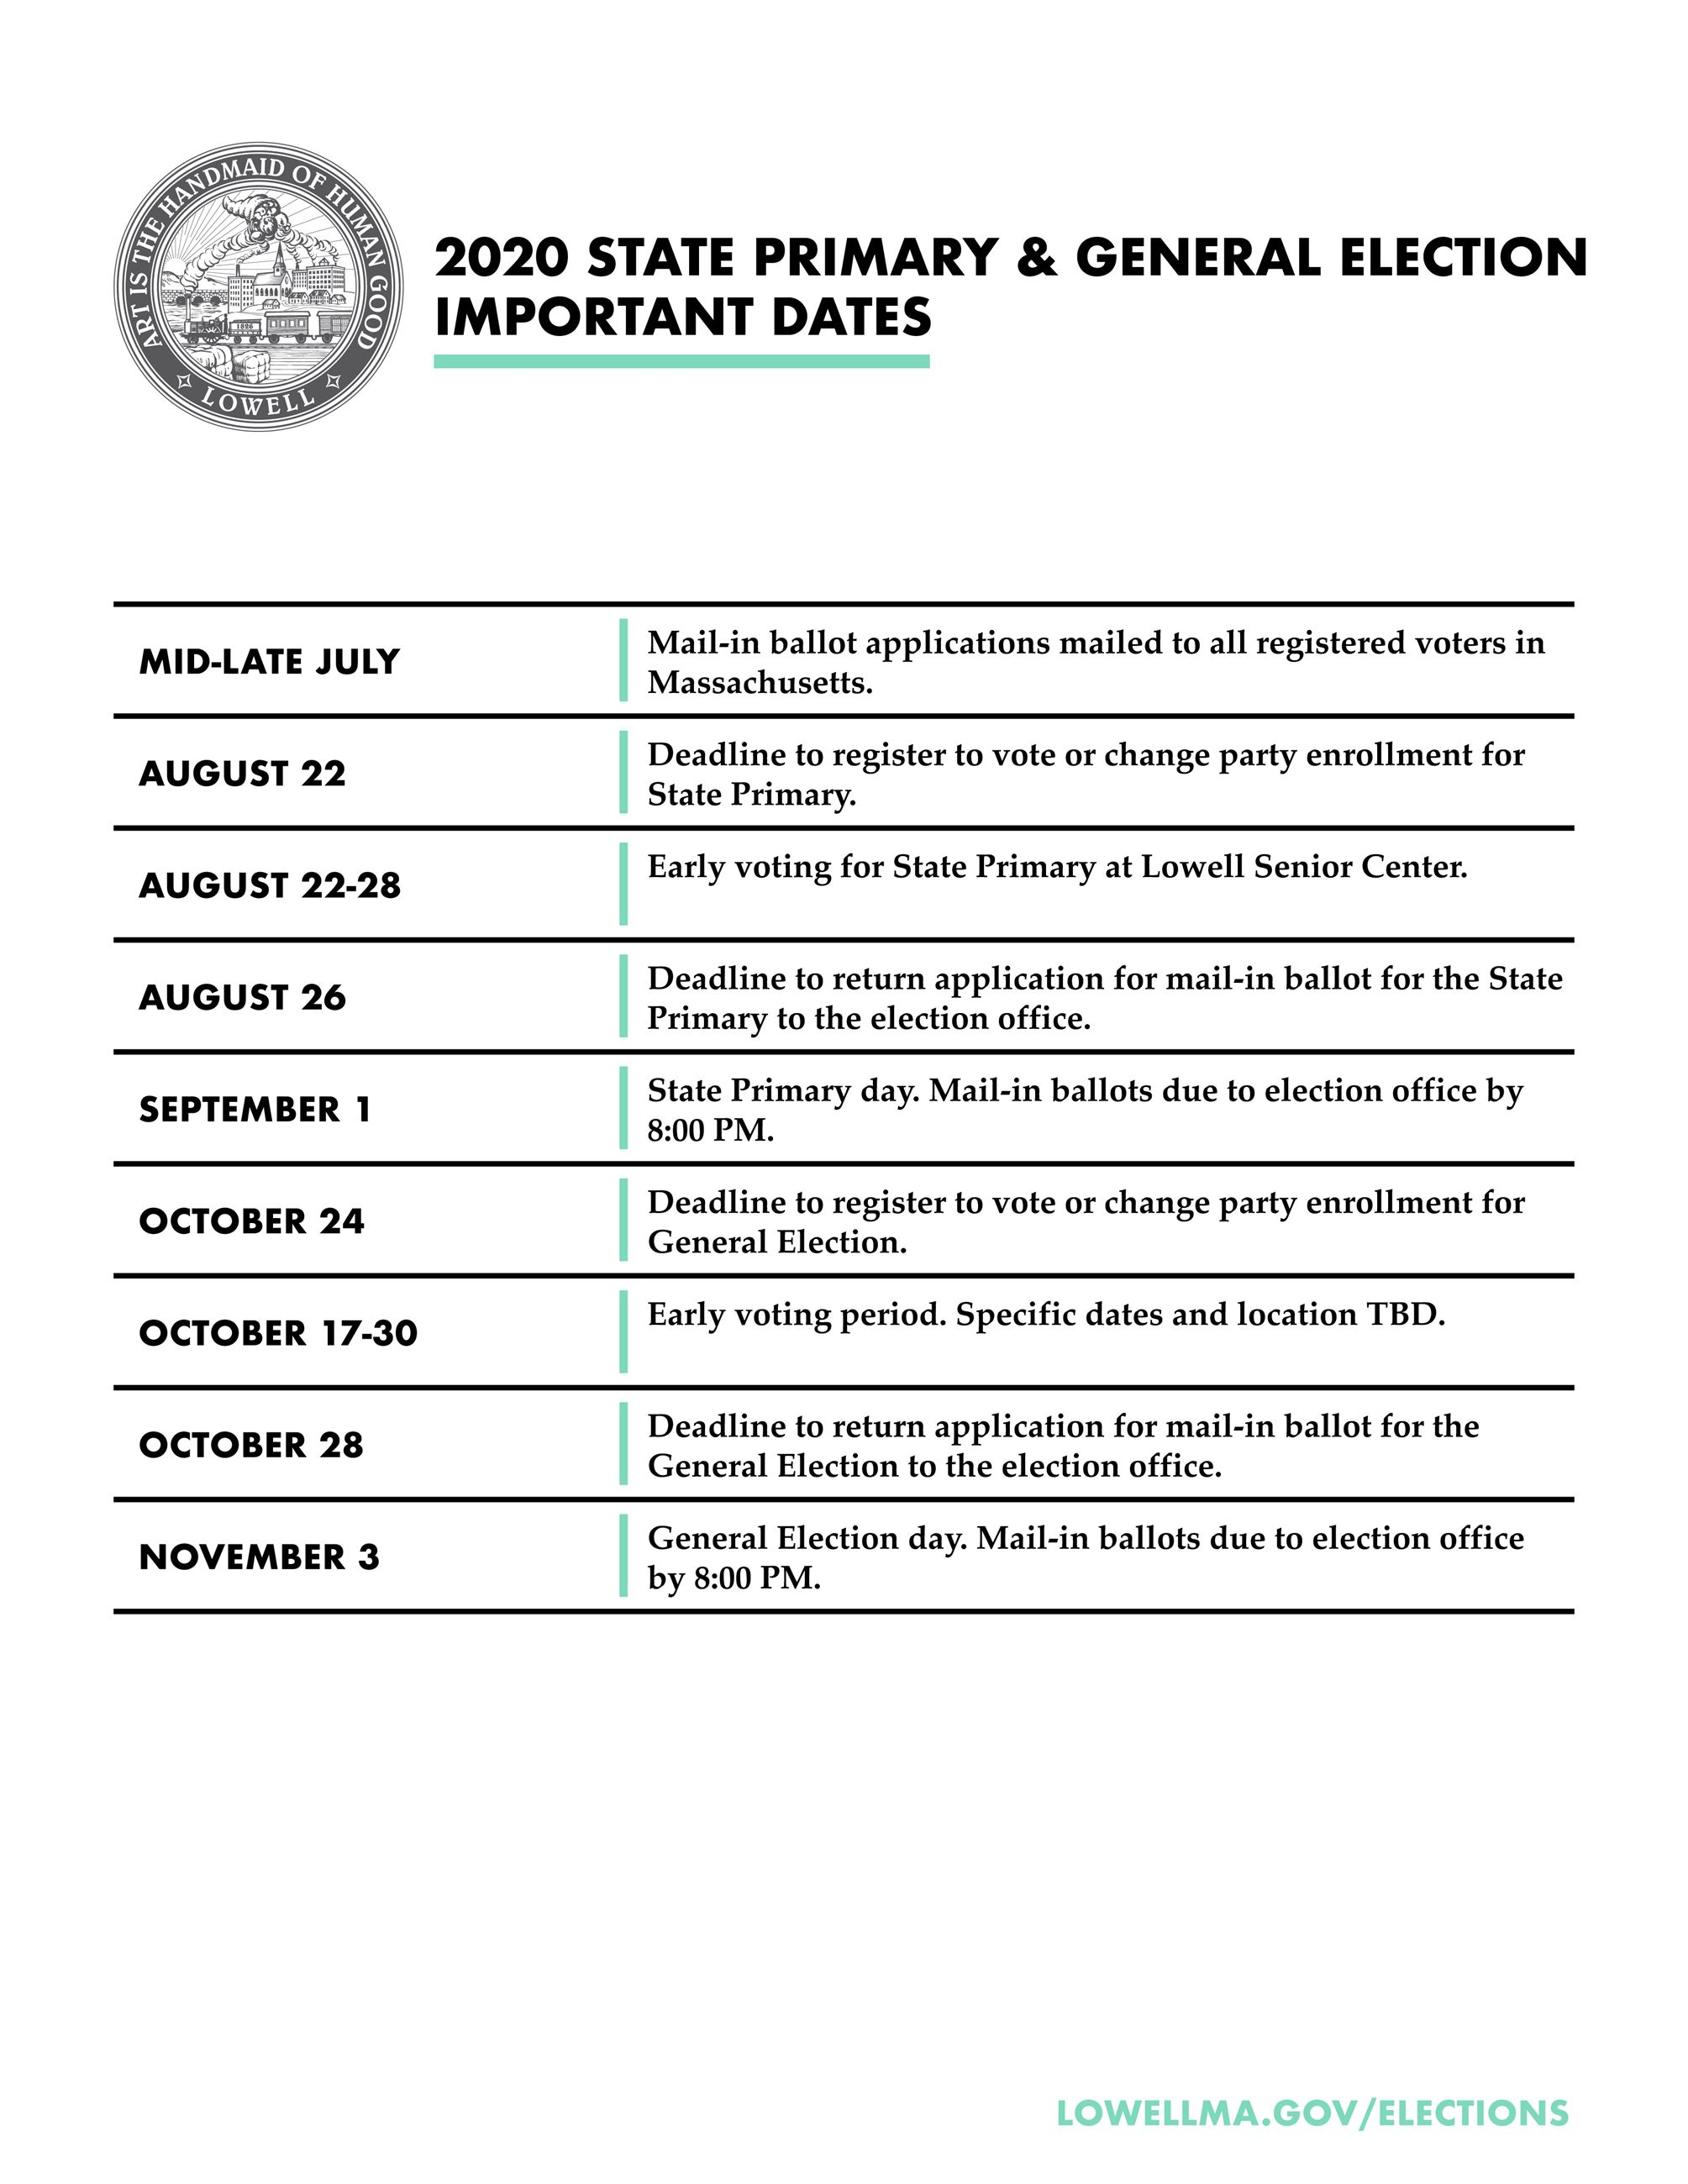 2020 Election Important Dates-01